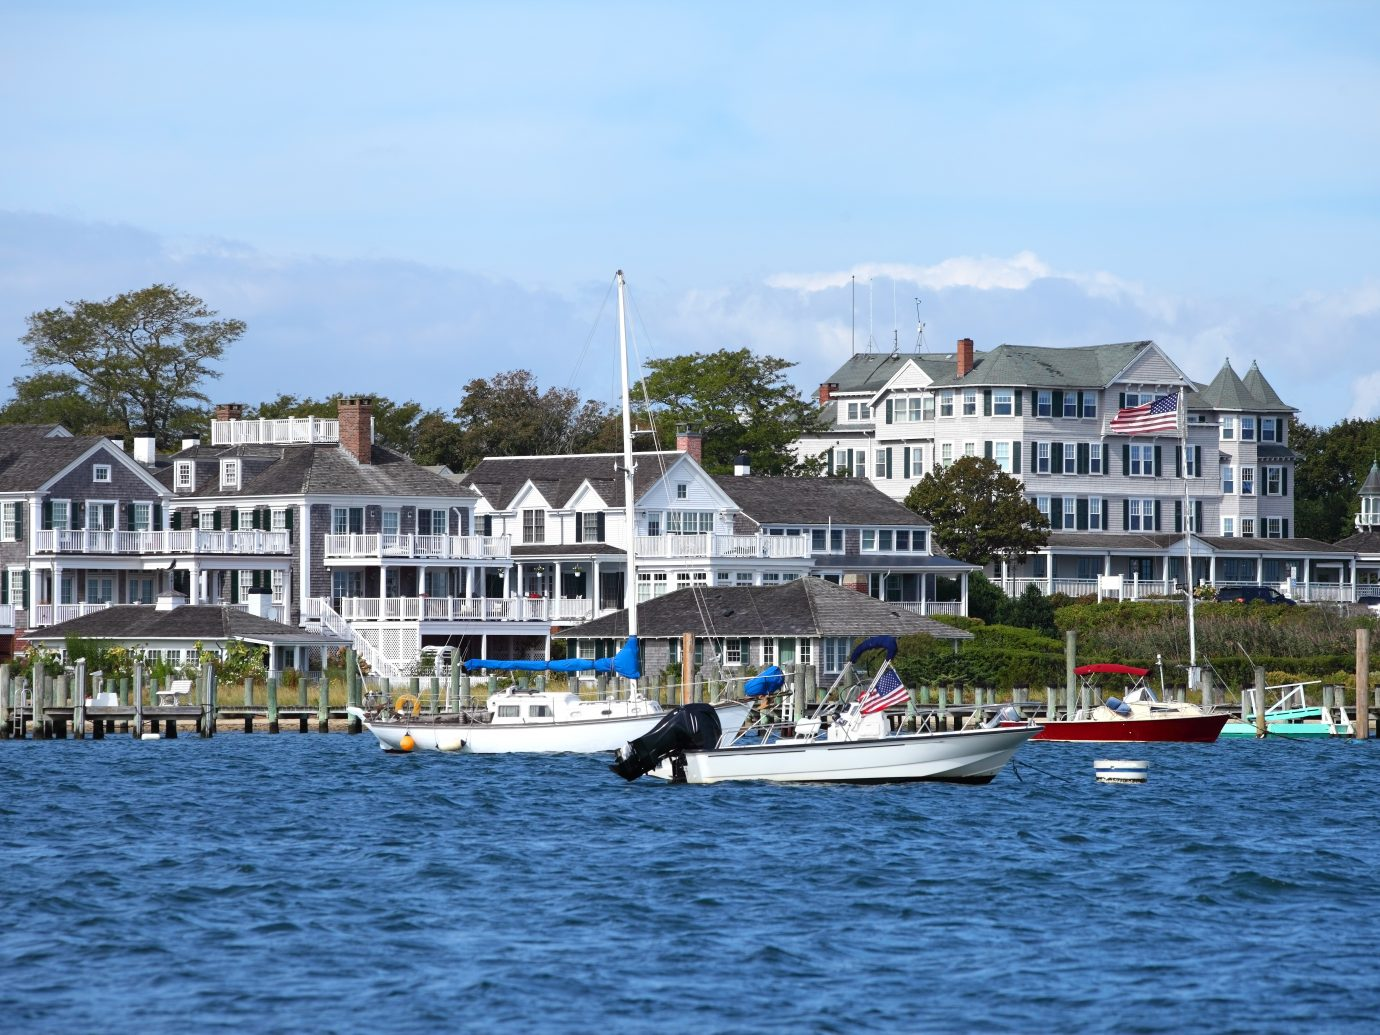 Edgartown on Martha's Vineyard in Dukes County, Massachusetts, United States.